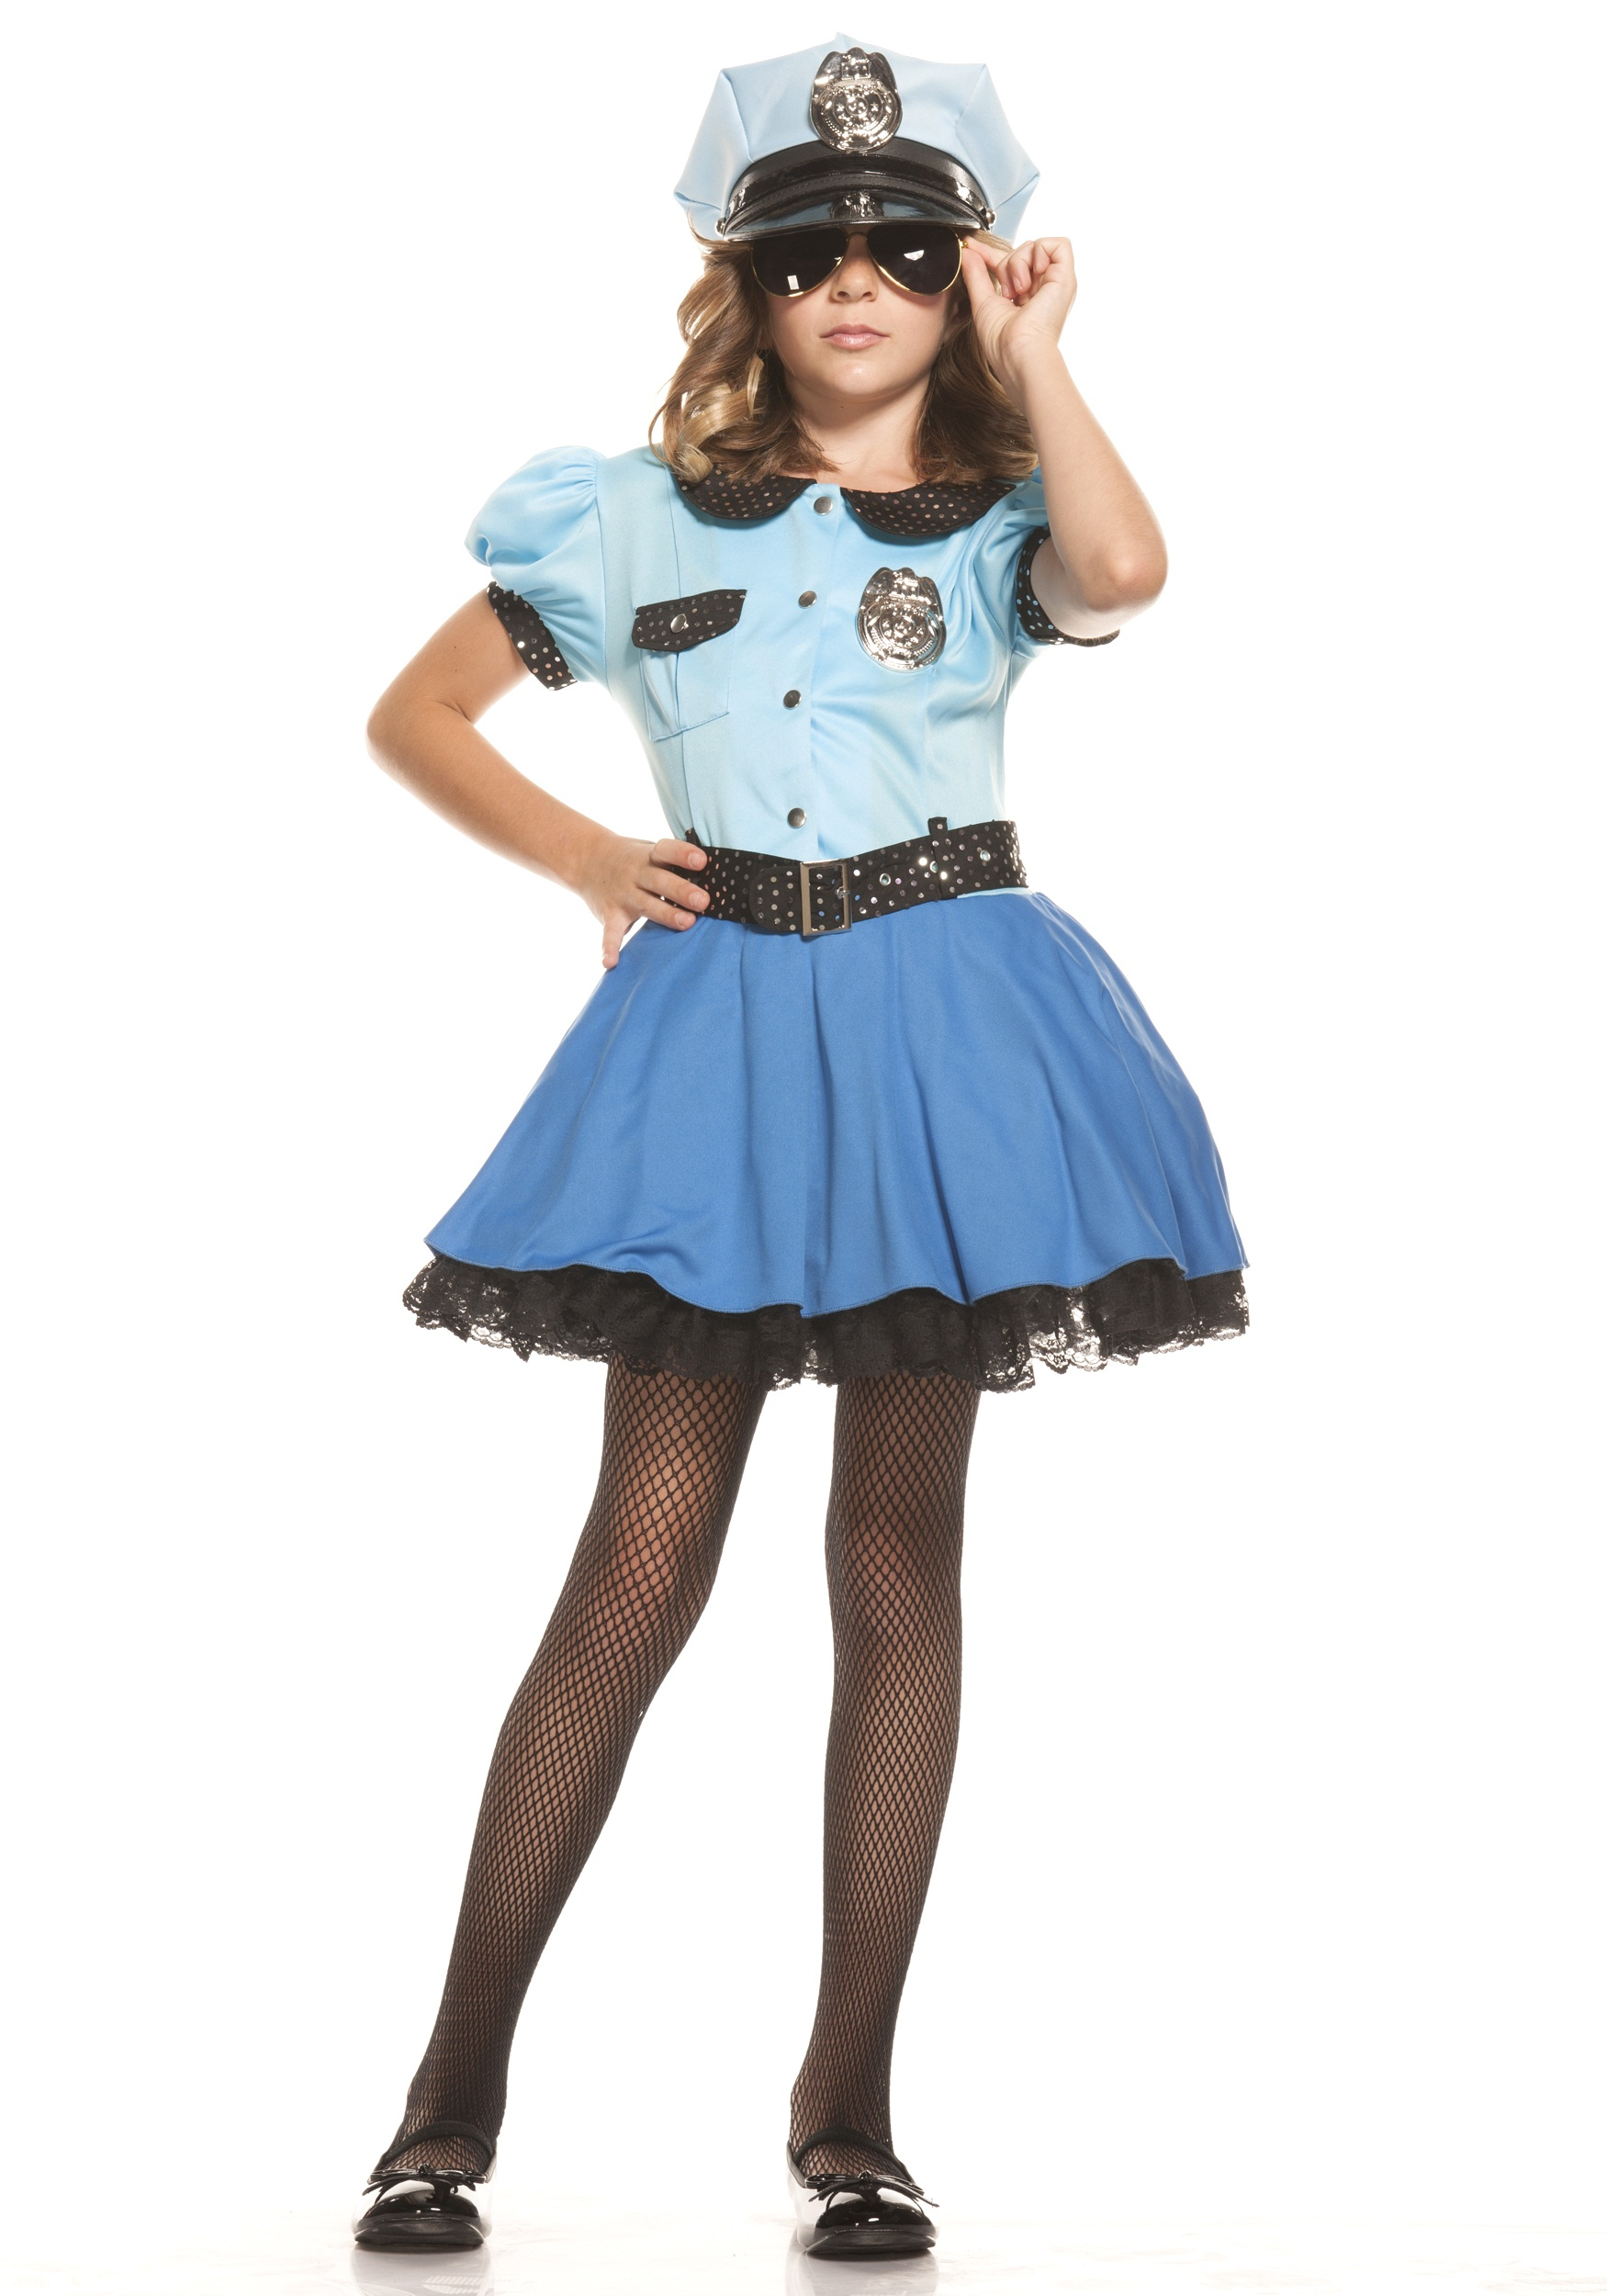 bbfb2cdd3da Girls Police Uniform Costume